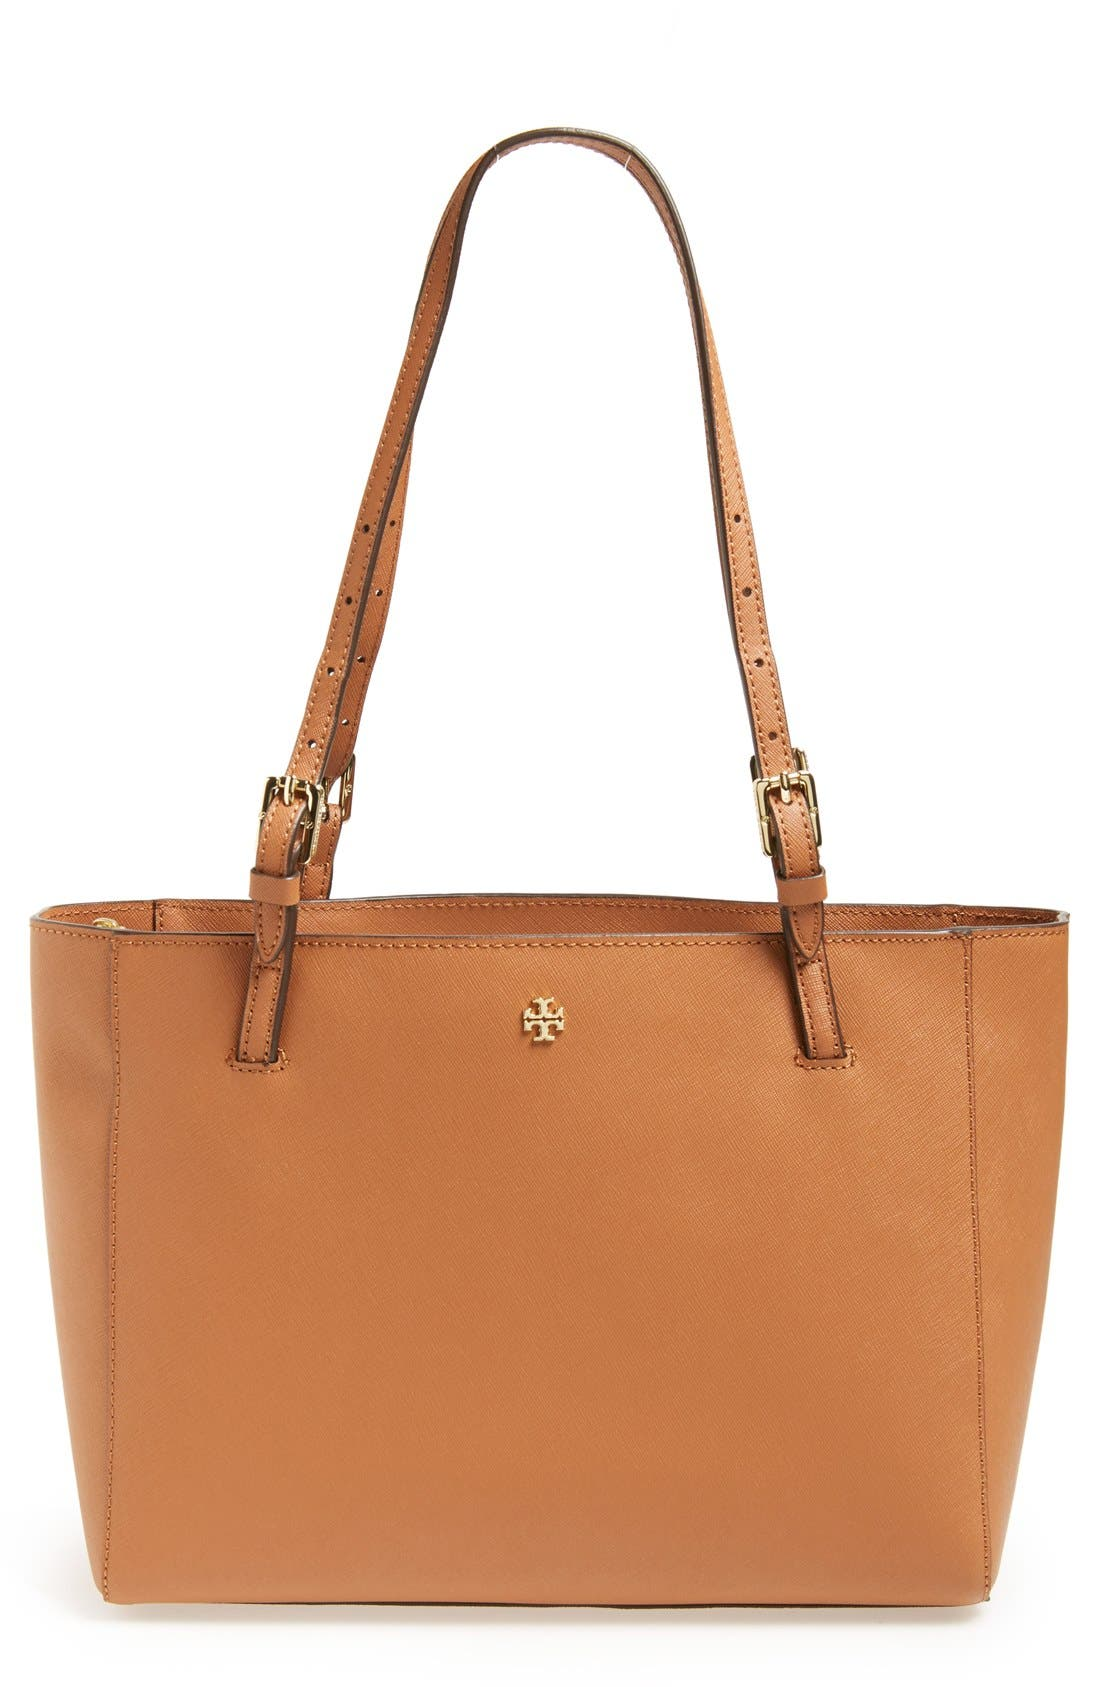 'Small York' Saffiano Leather Buckle Tote,                             Main thumbnail 5, color,